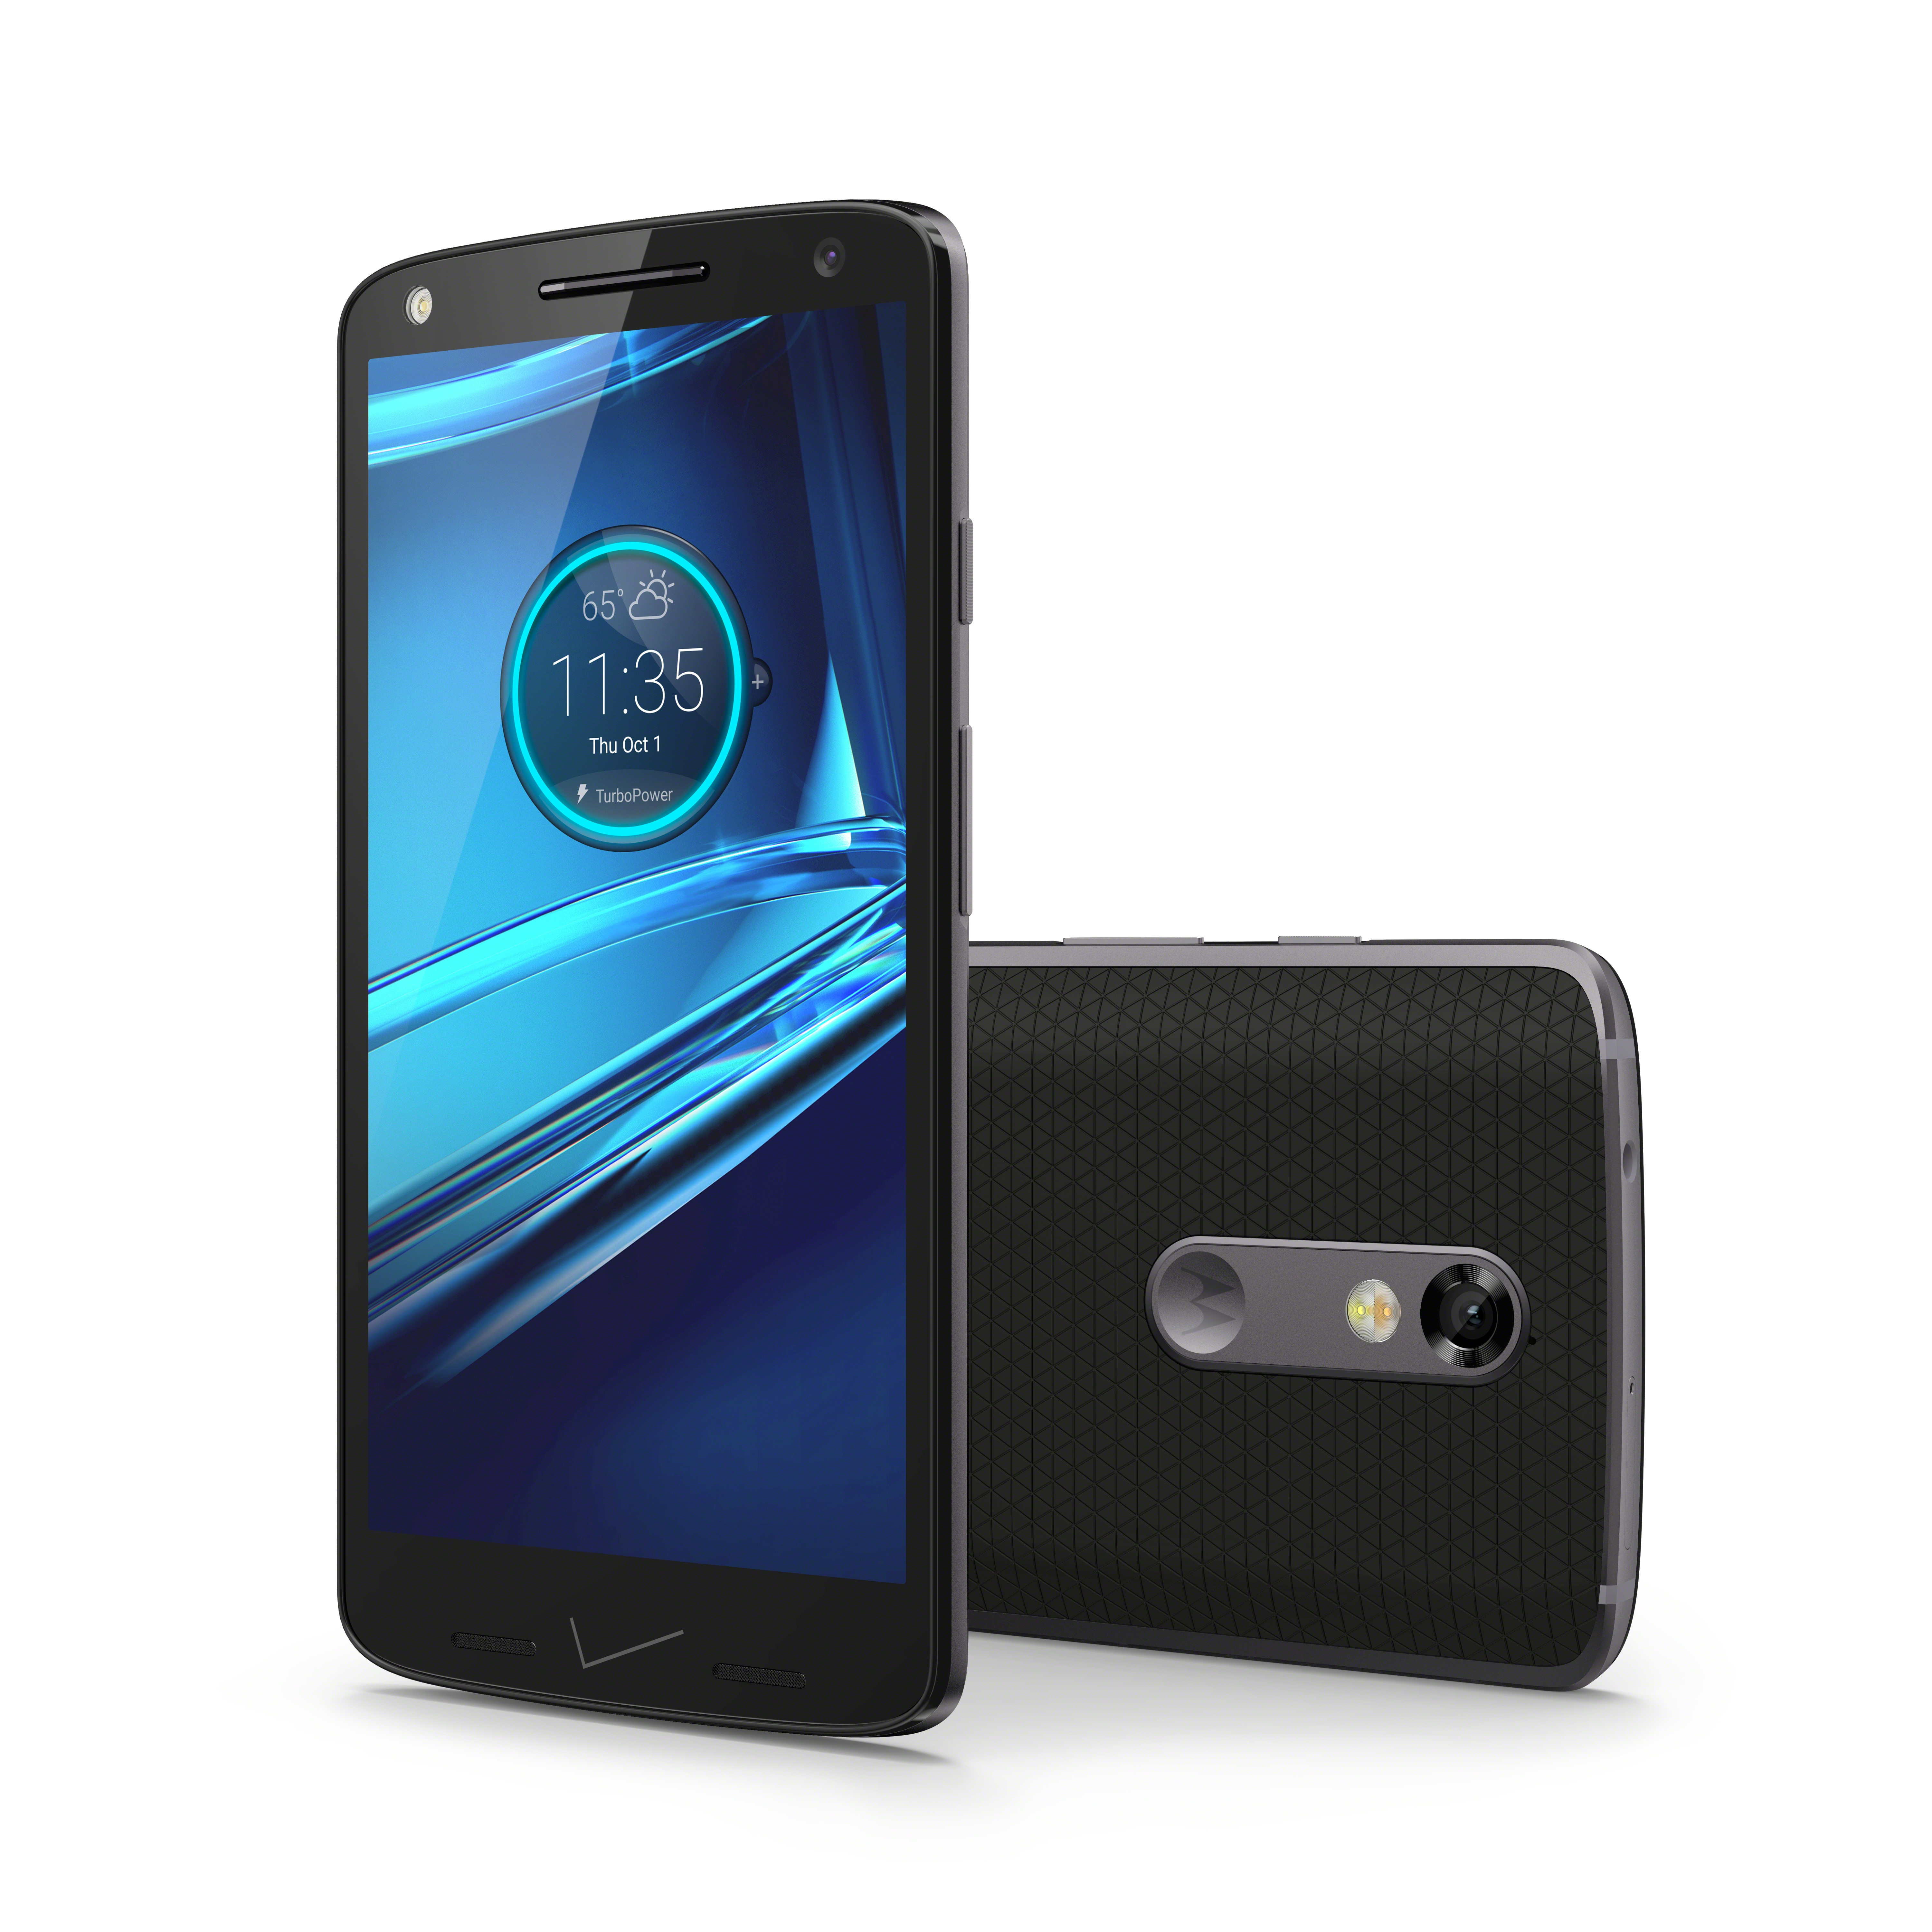 Motorola Droid Turbo Wallpapers: DROID Turbo 2 Rumored To Get Exclusive Star Wars